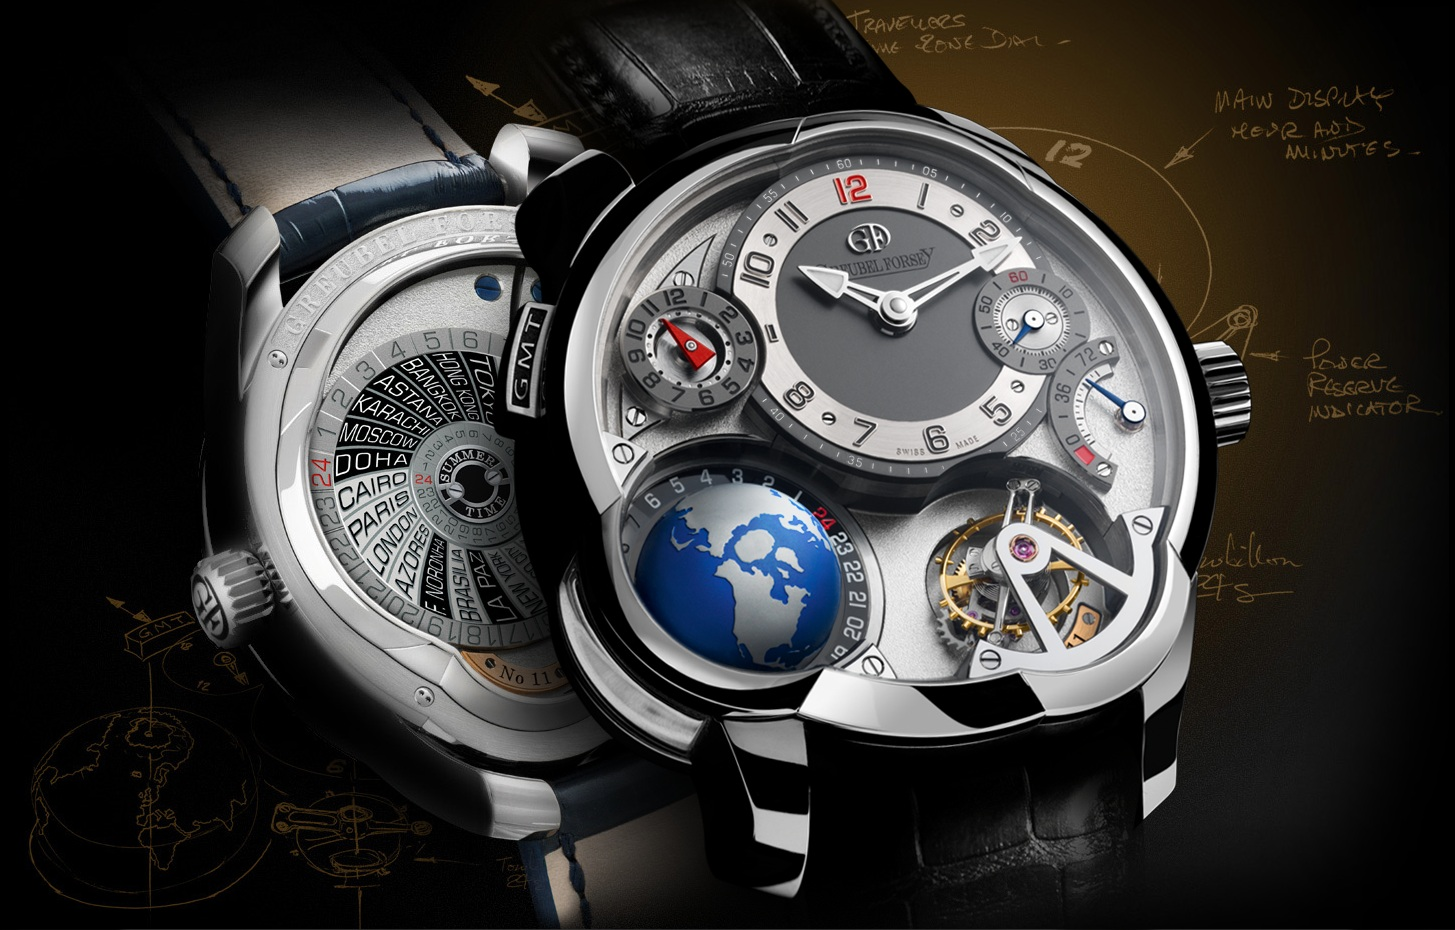 Top 5 high-end watches for men 2015